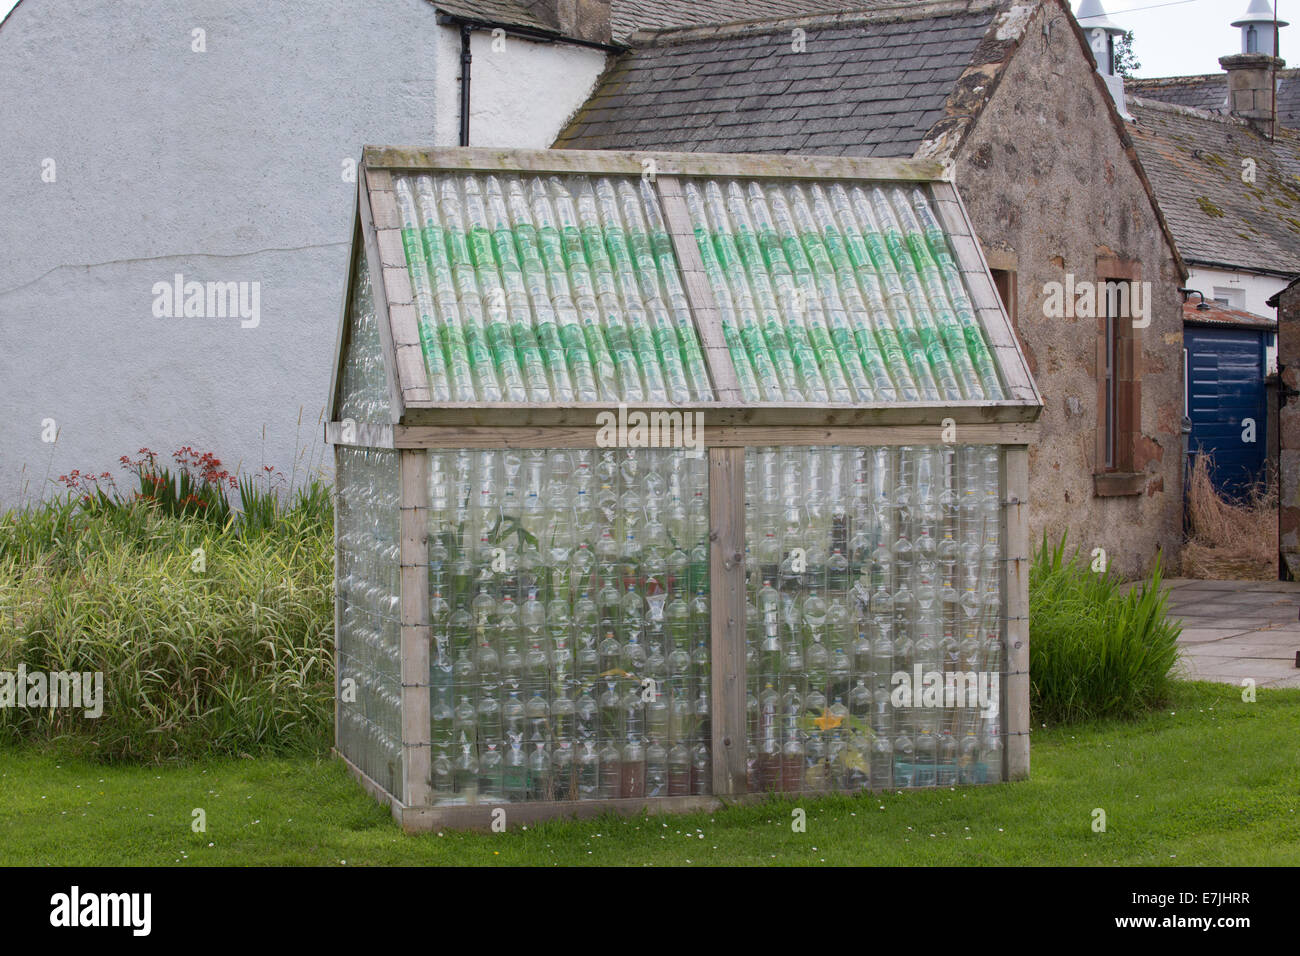 Greenhouse made from recycled plastic bottles stock photo for What is a greenhouse made out of